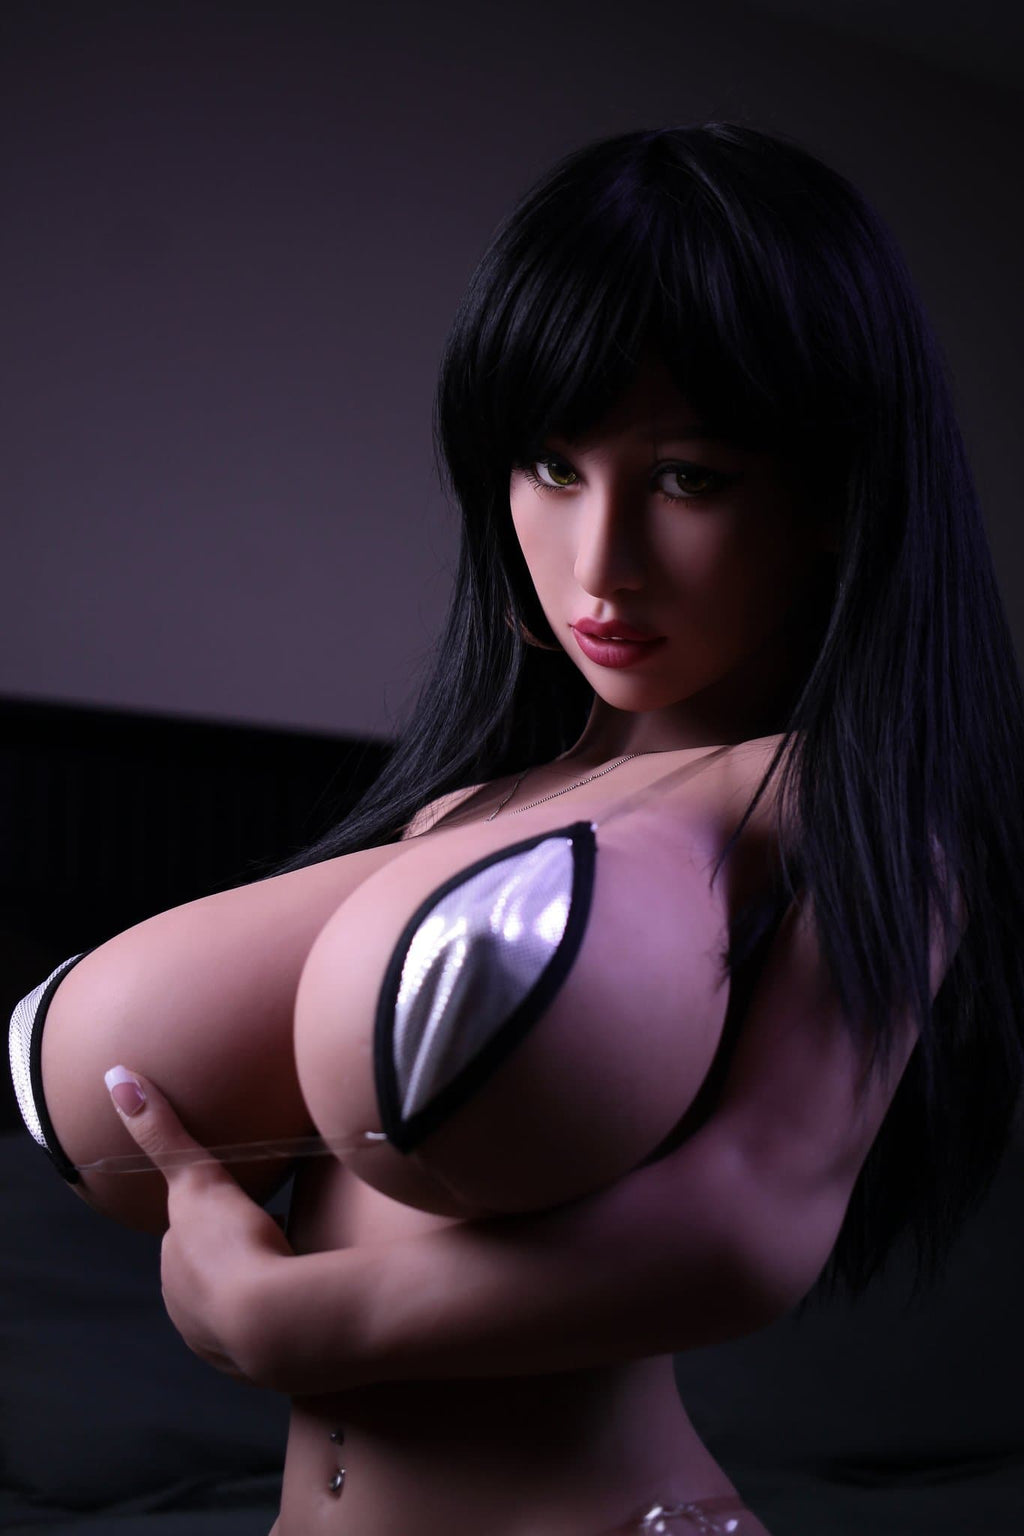 halston 140cm black hair big boobs athletic tpe yl bbw small sex doll